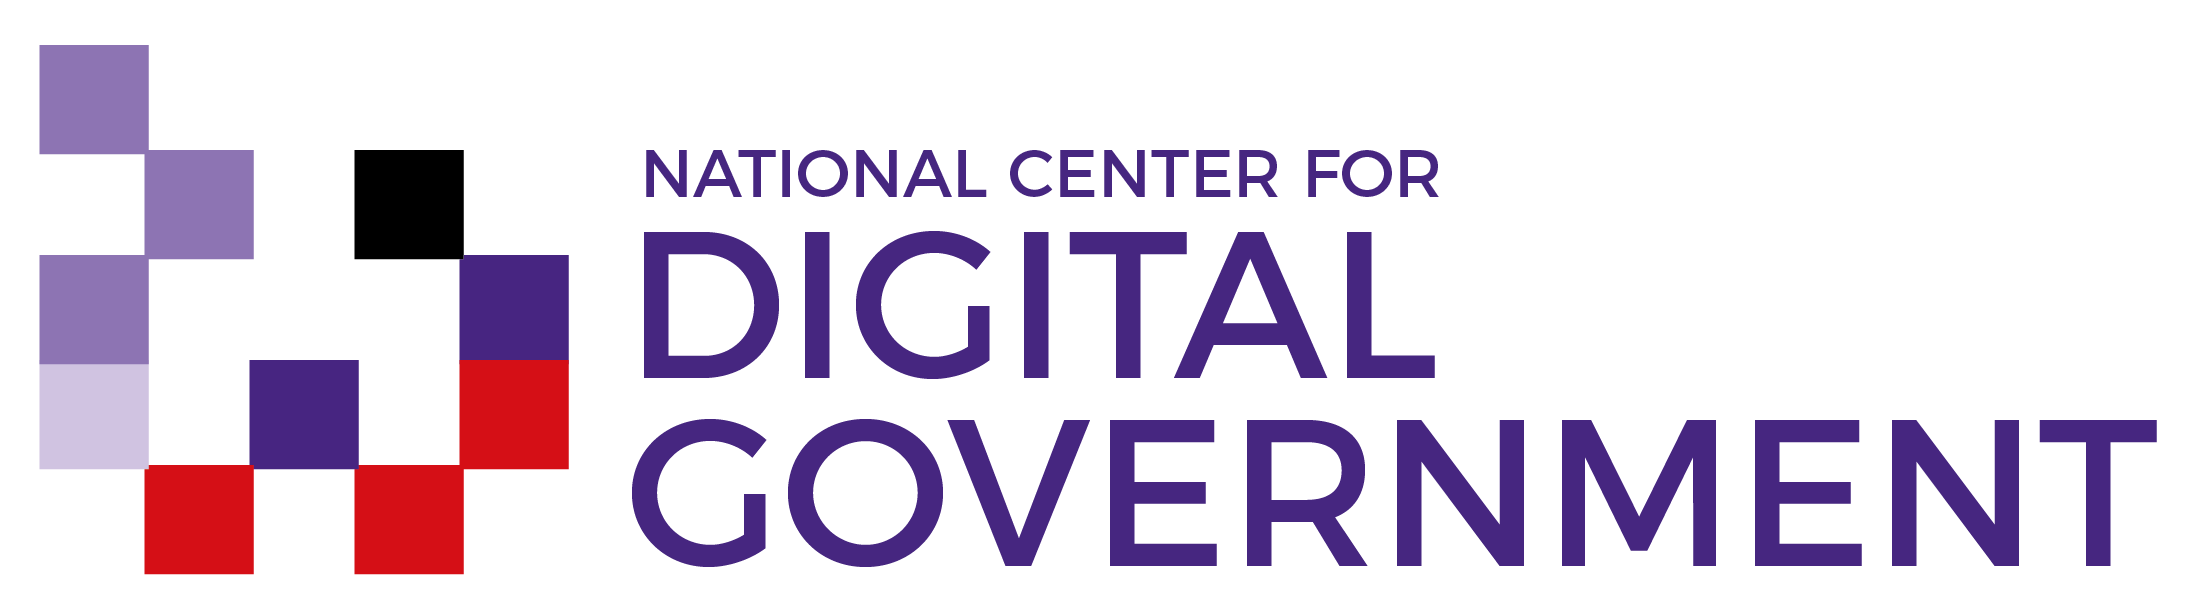 National Center for Digital Government | UMass Amherst